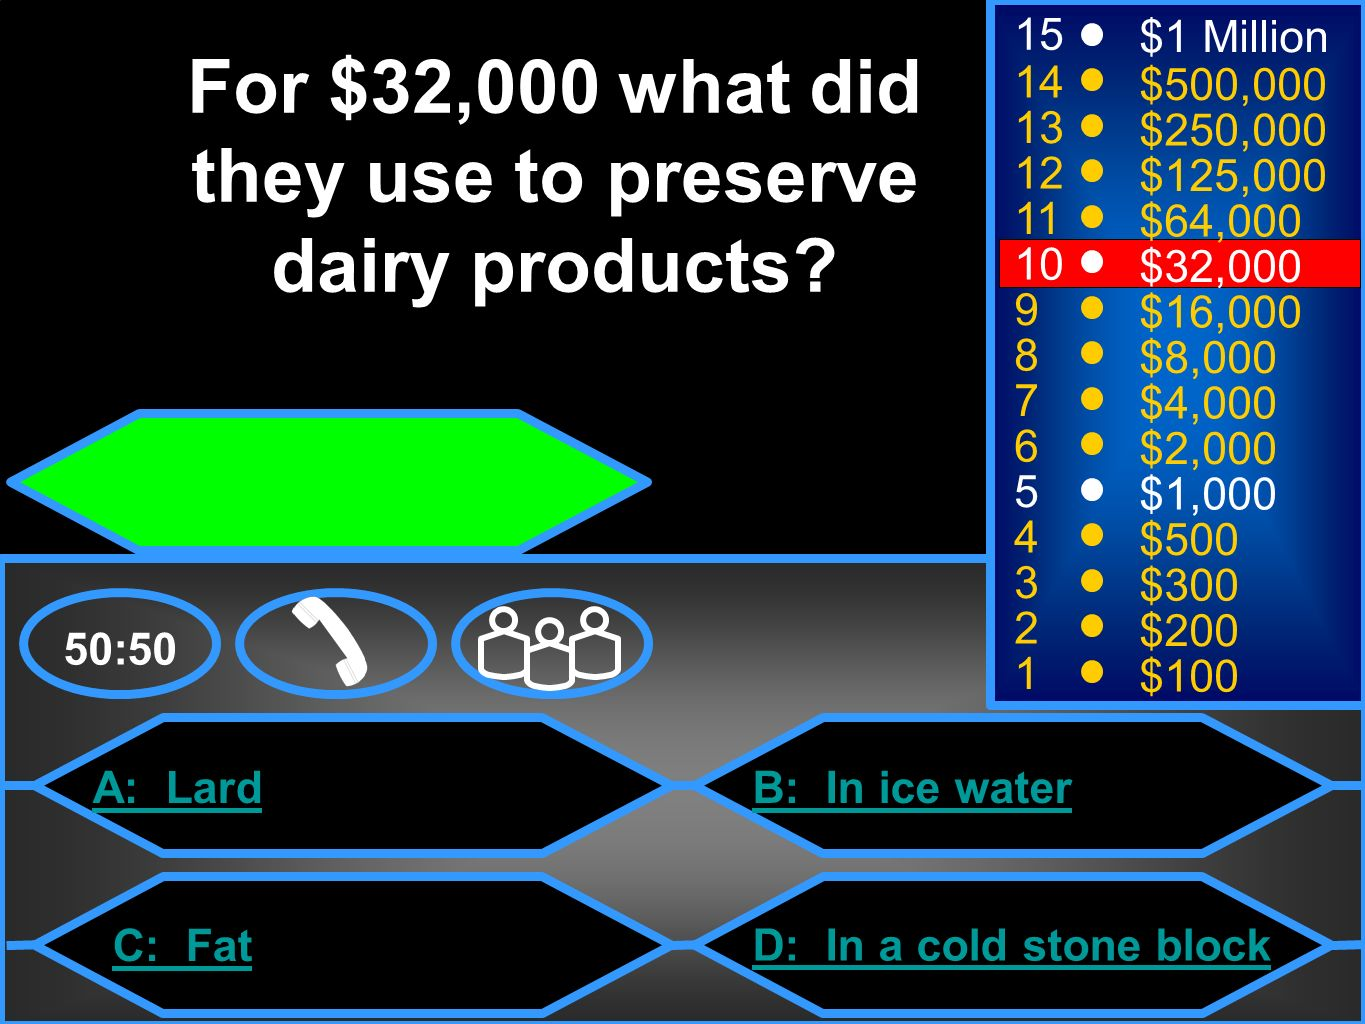 A: Lard C: Fat B: In ice water D: In a cold stone block 50:50 15 14 13 12 11 10 9 8 7 6 5 4 3 2 1 $1 Million $500,000 $250,000 $125,000 $64,000 $32,000 $16,000 $8,000 $4,000 $2,000 $1,000 $500 $300 $200 $100 For $32,000 what did they use to preserve dairy products